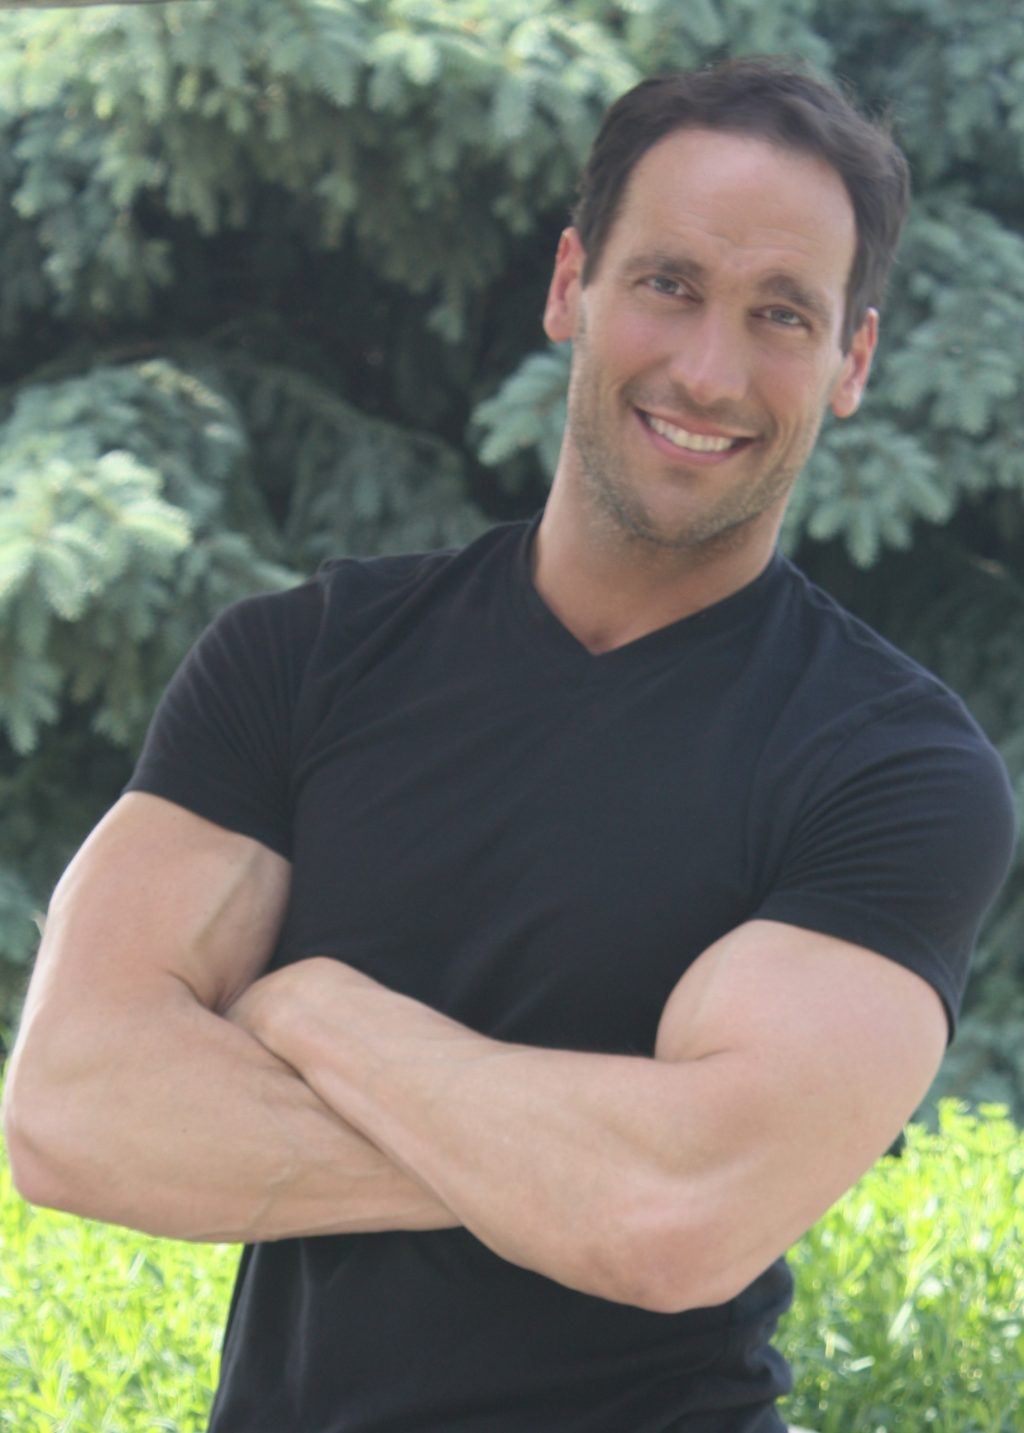 Personal Trainer Chicago, Illinois - Robert Vani